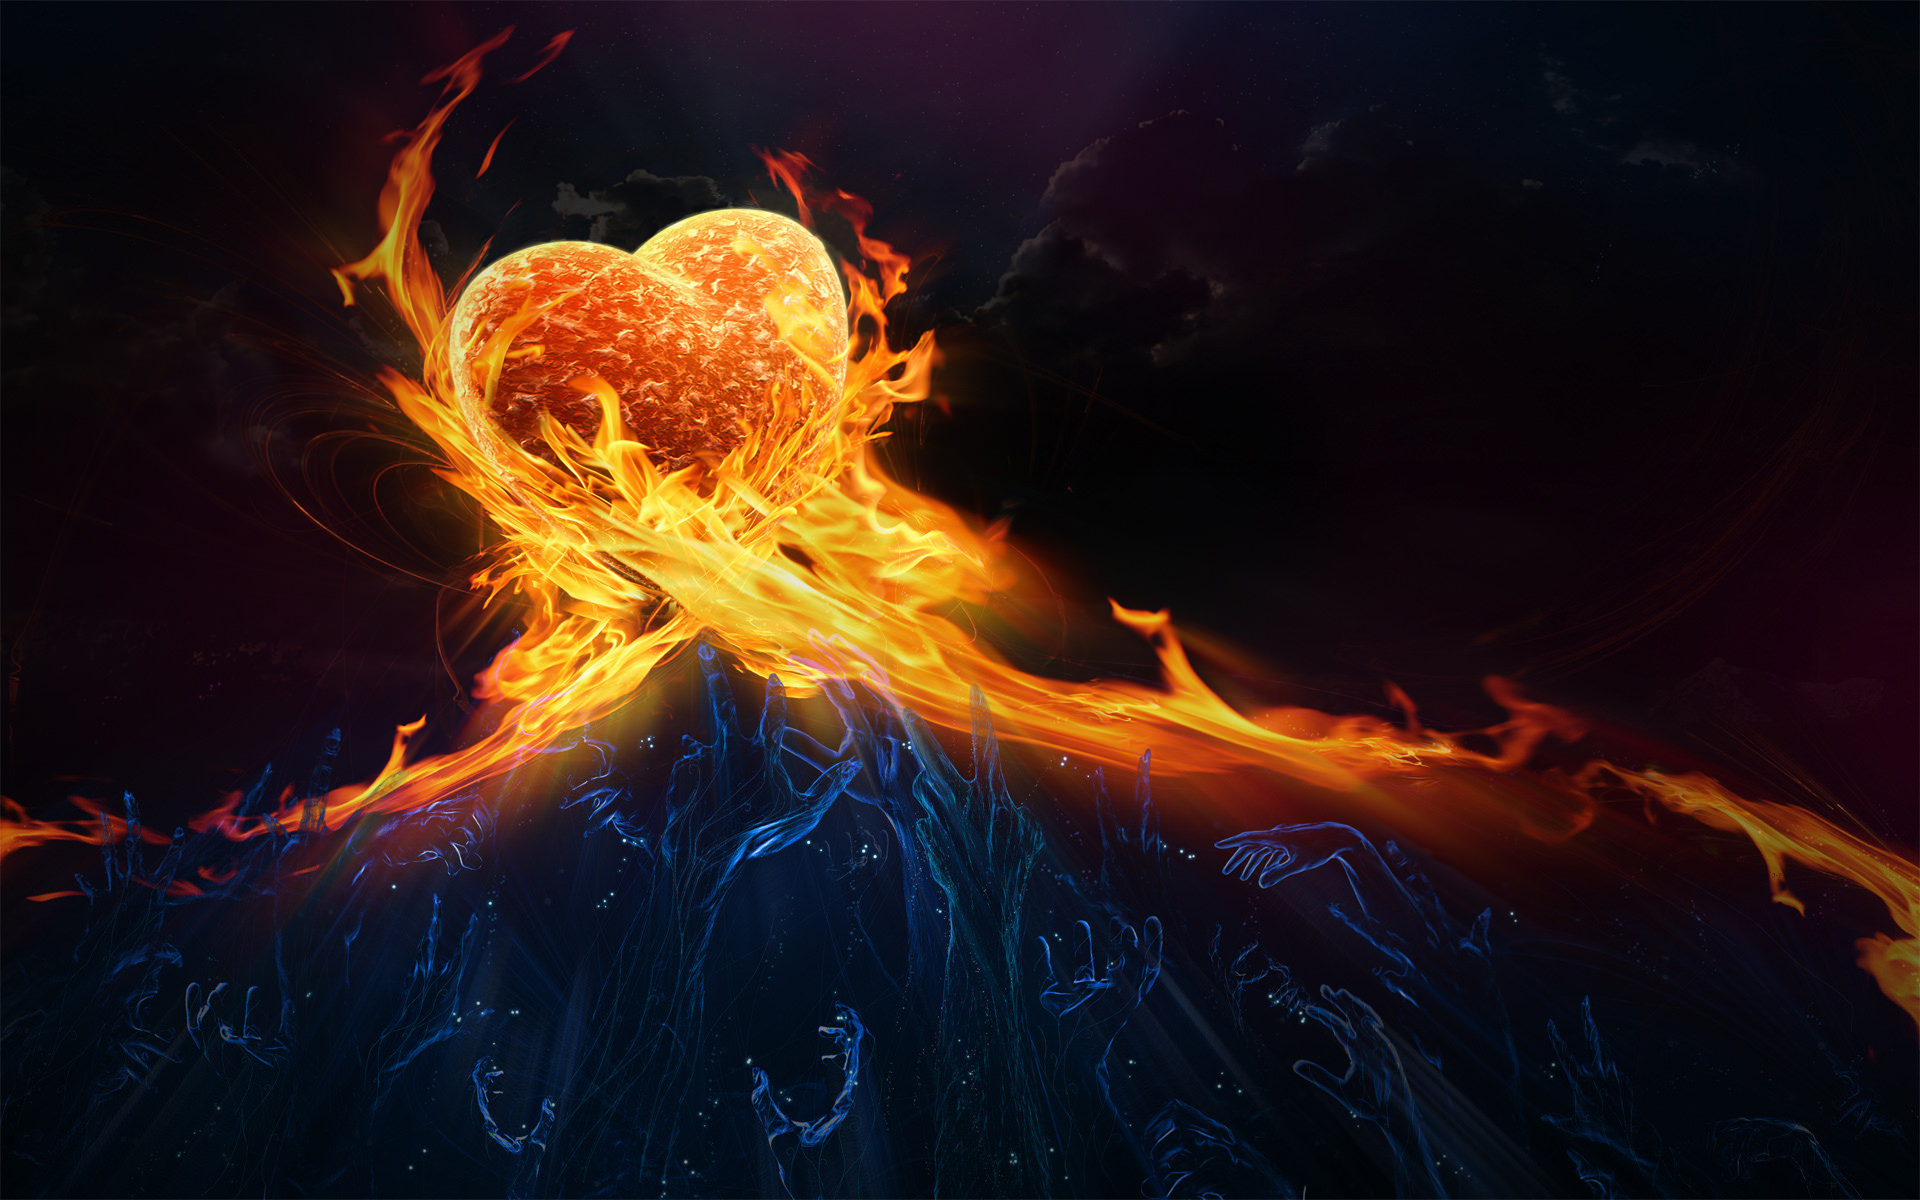 Heart on Fire Wallpaper